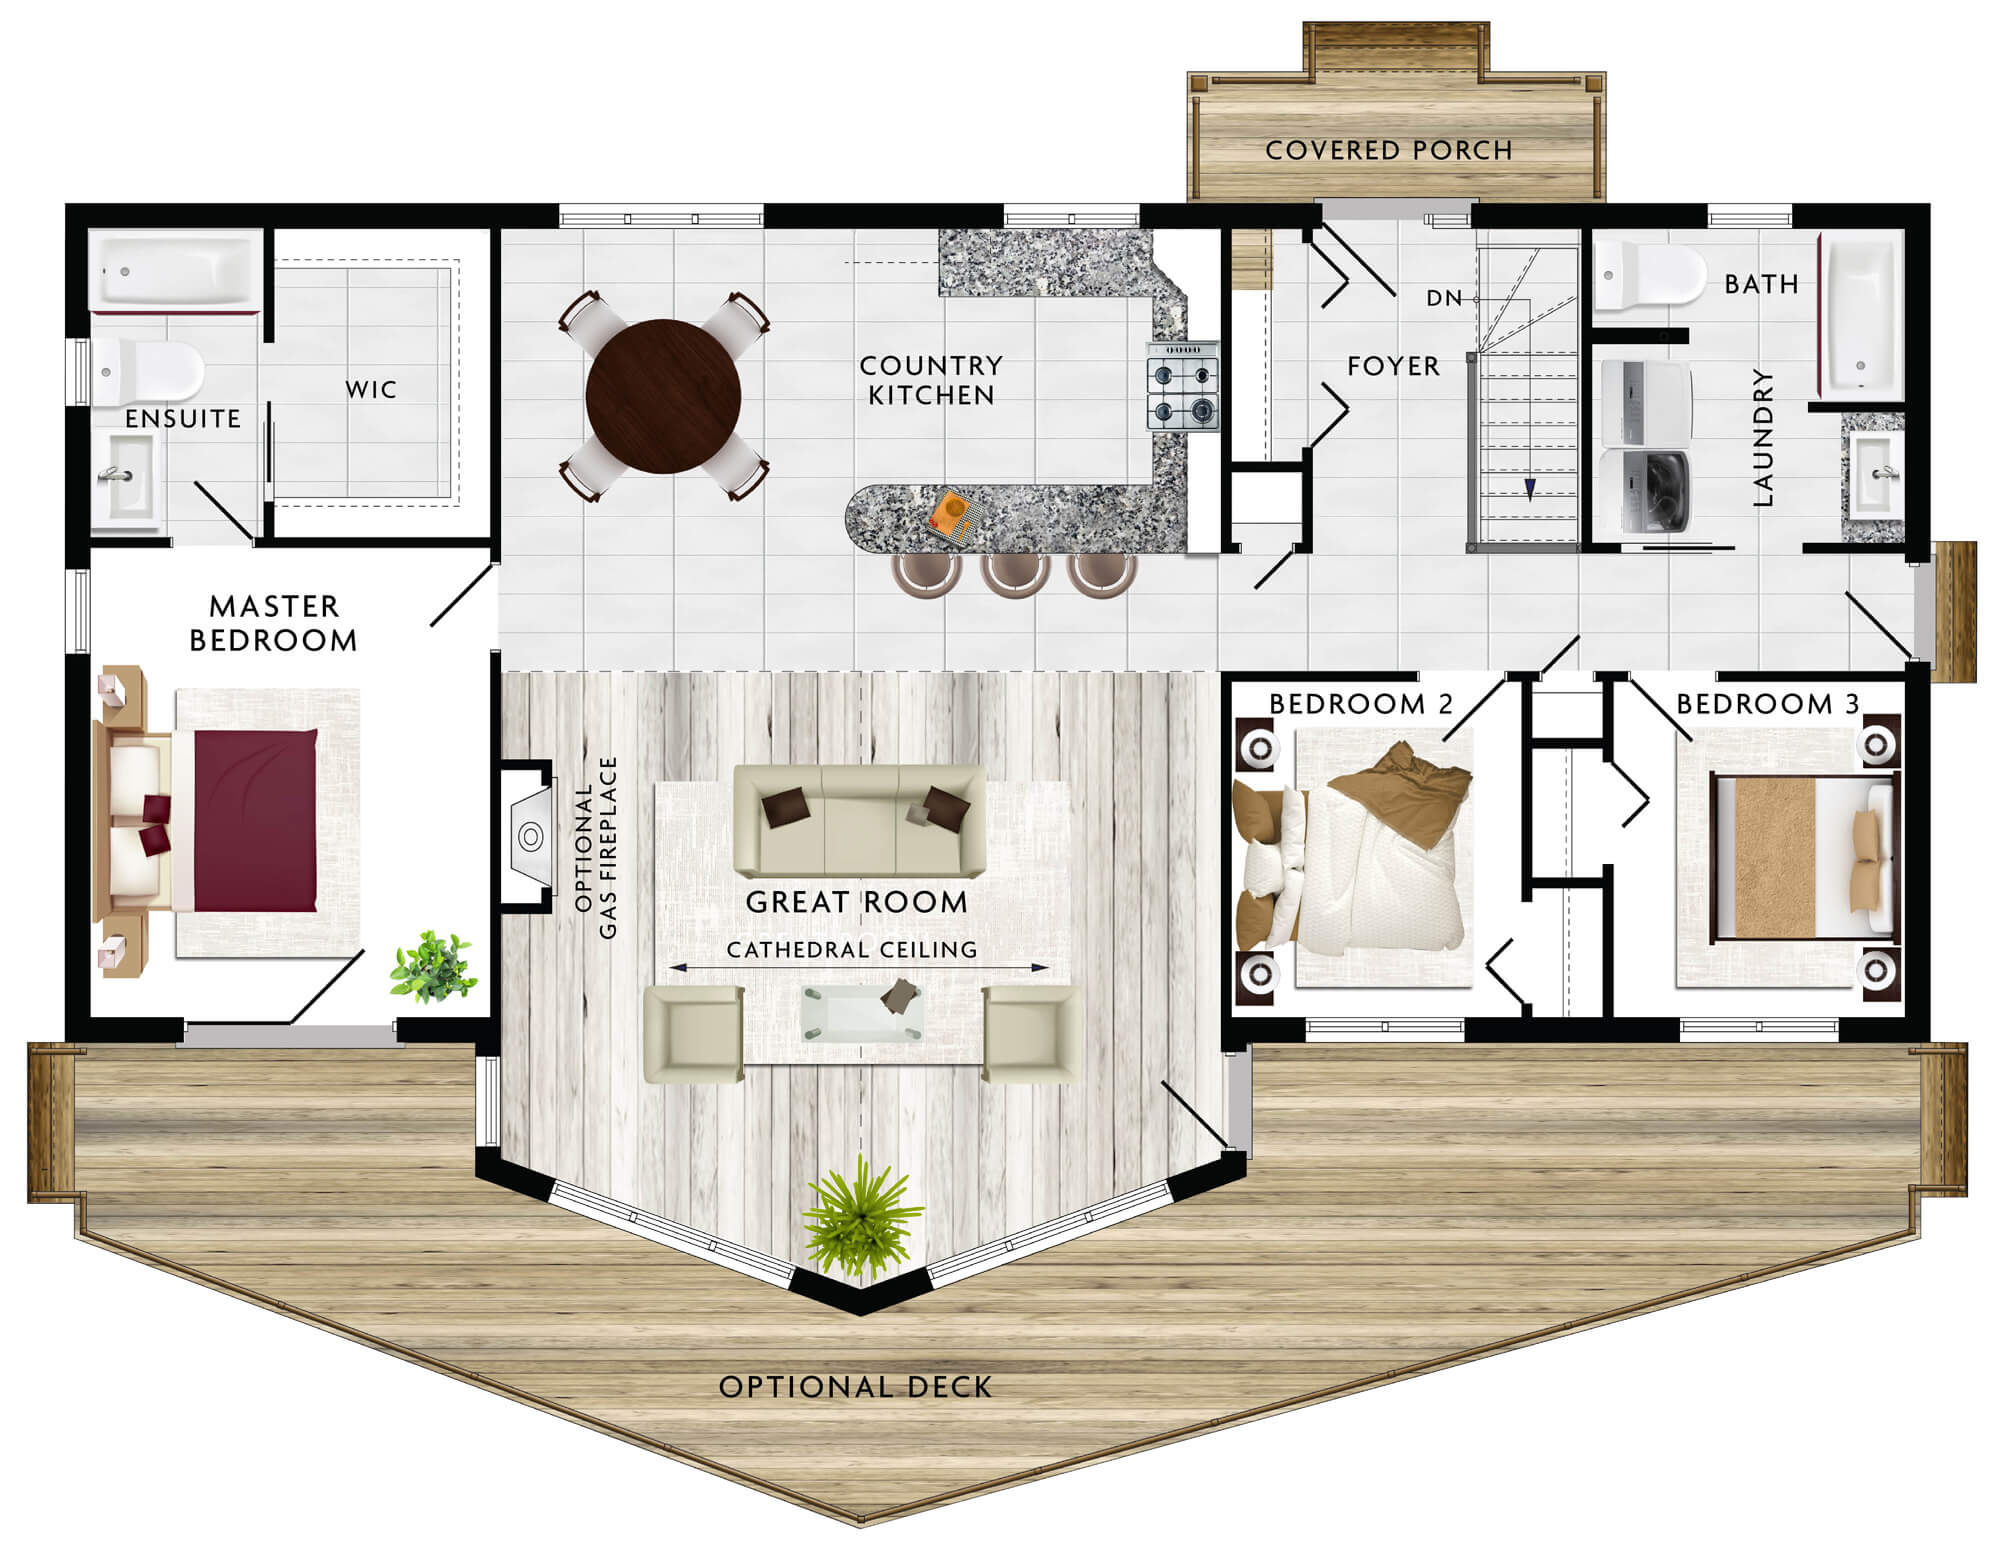 Beaver homes and cottages banff ii for House plans with 2 bedrooms in basement